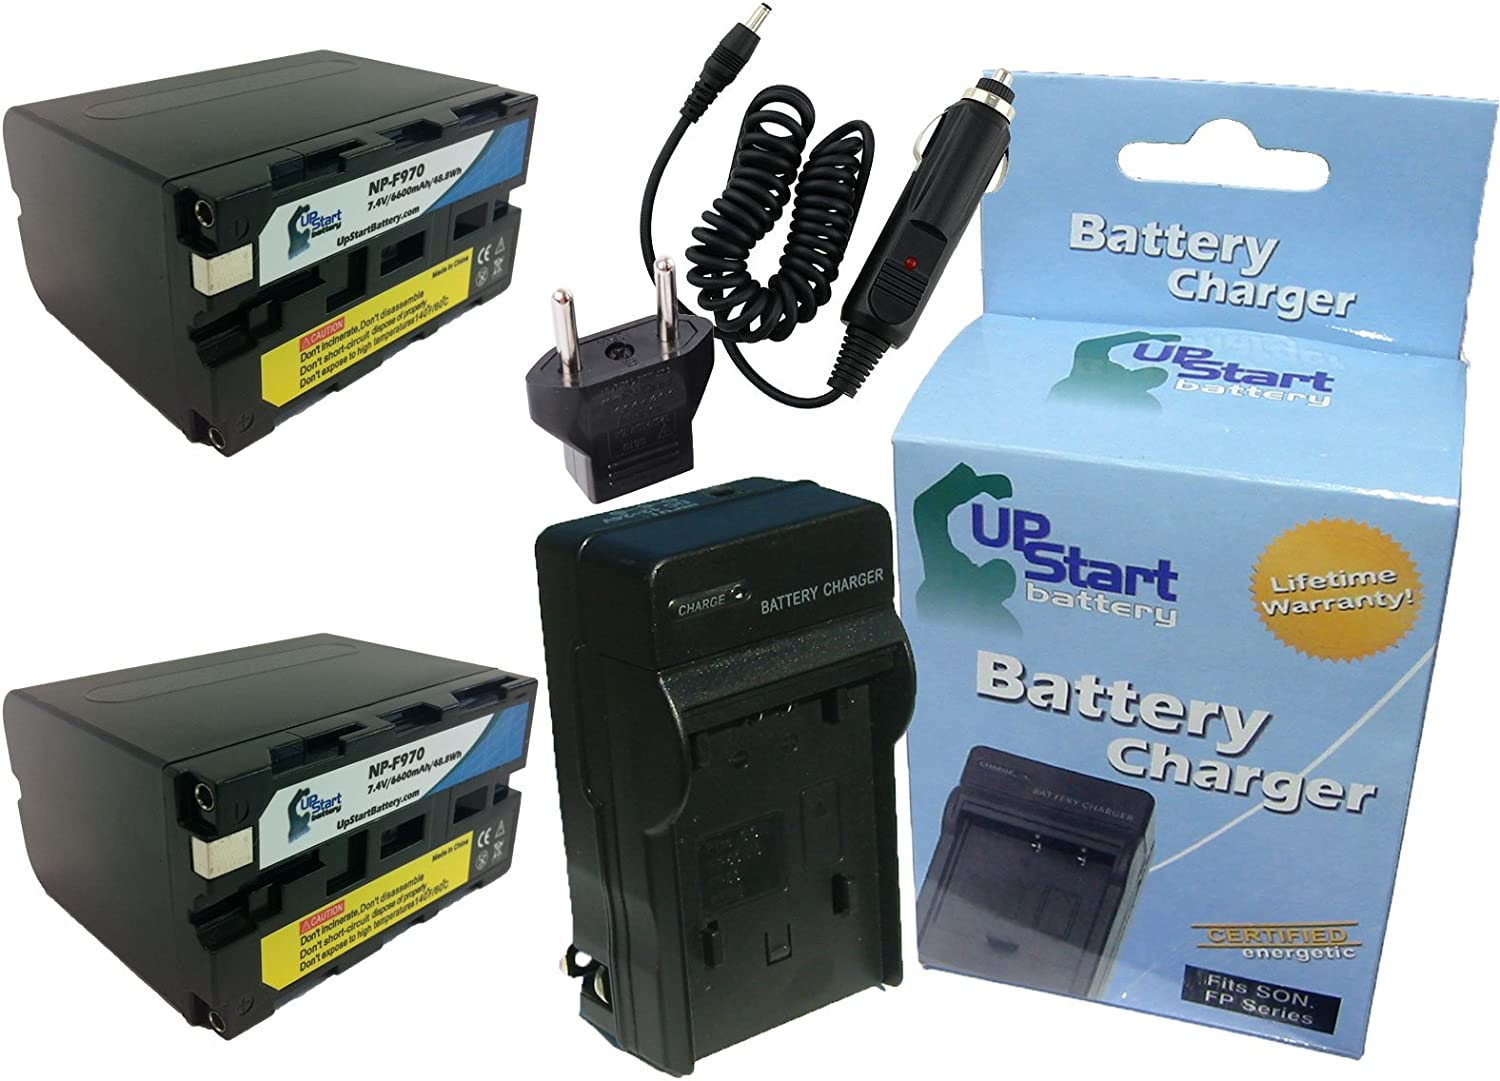 Replacement for Sony DSR-PD170 Battery Charger with Car /& EU Adapters 6600mAh 7.4V Lithium-Ion 2 Pack High Capacity Compatible with Sony NP-F970 Digital Camera Battery and Charger